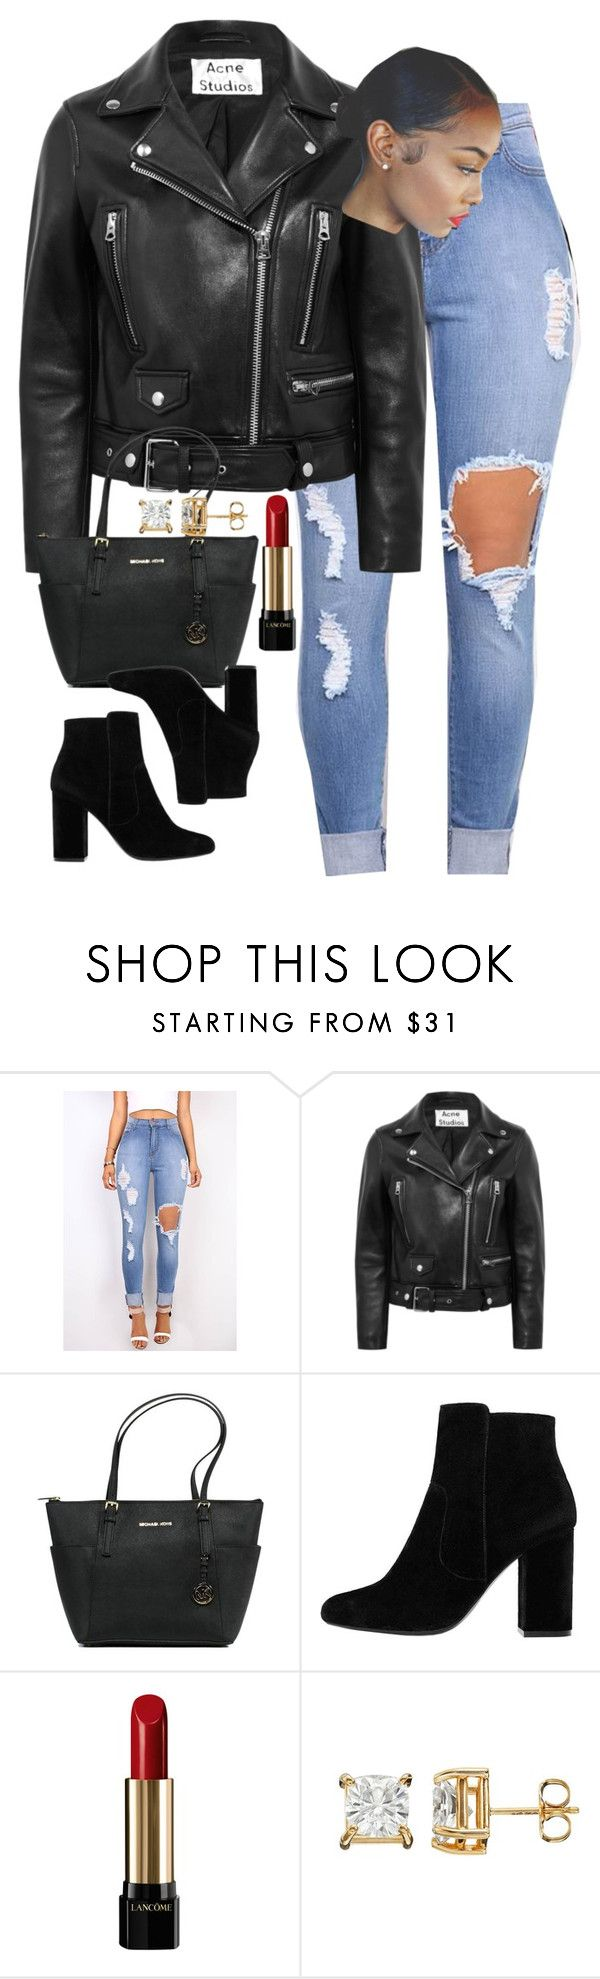 """10:09"" by mcmlxxi ❤ liked on Polyvore featuring Acne Studios, Michael Kors, MANGO and Lancôme"